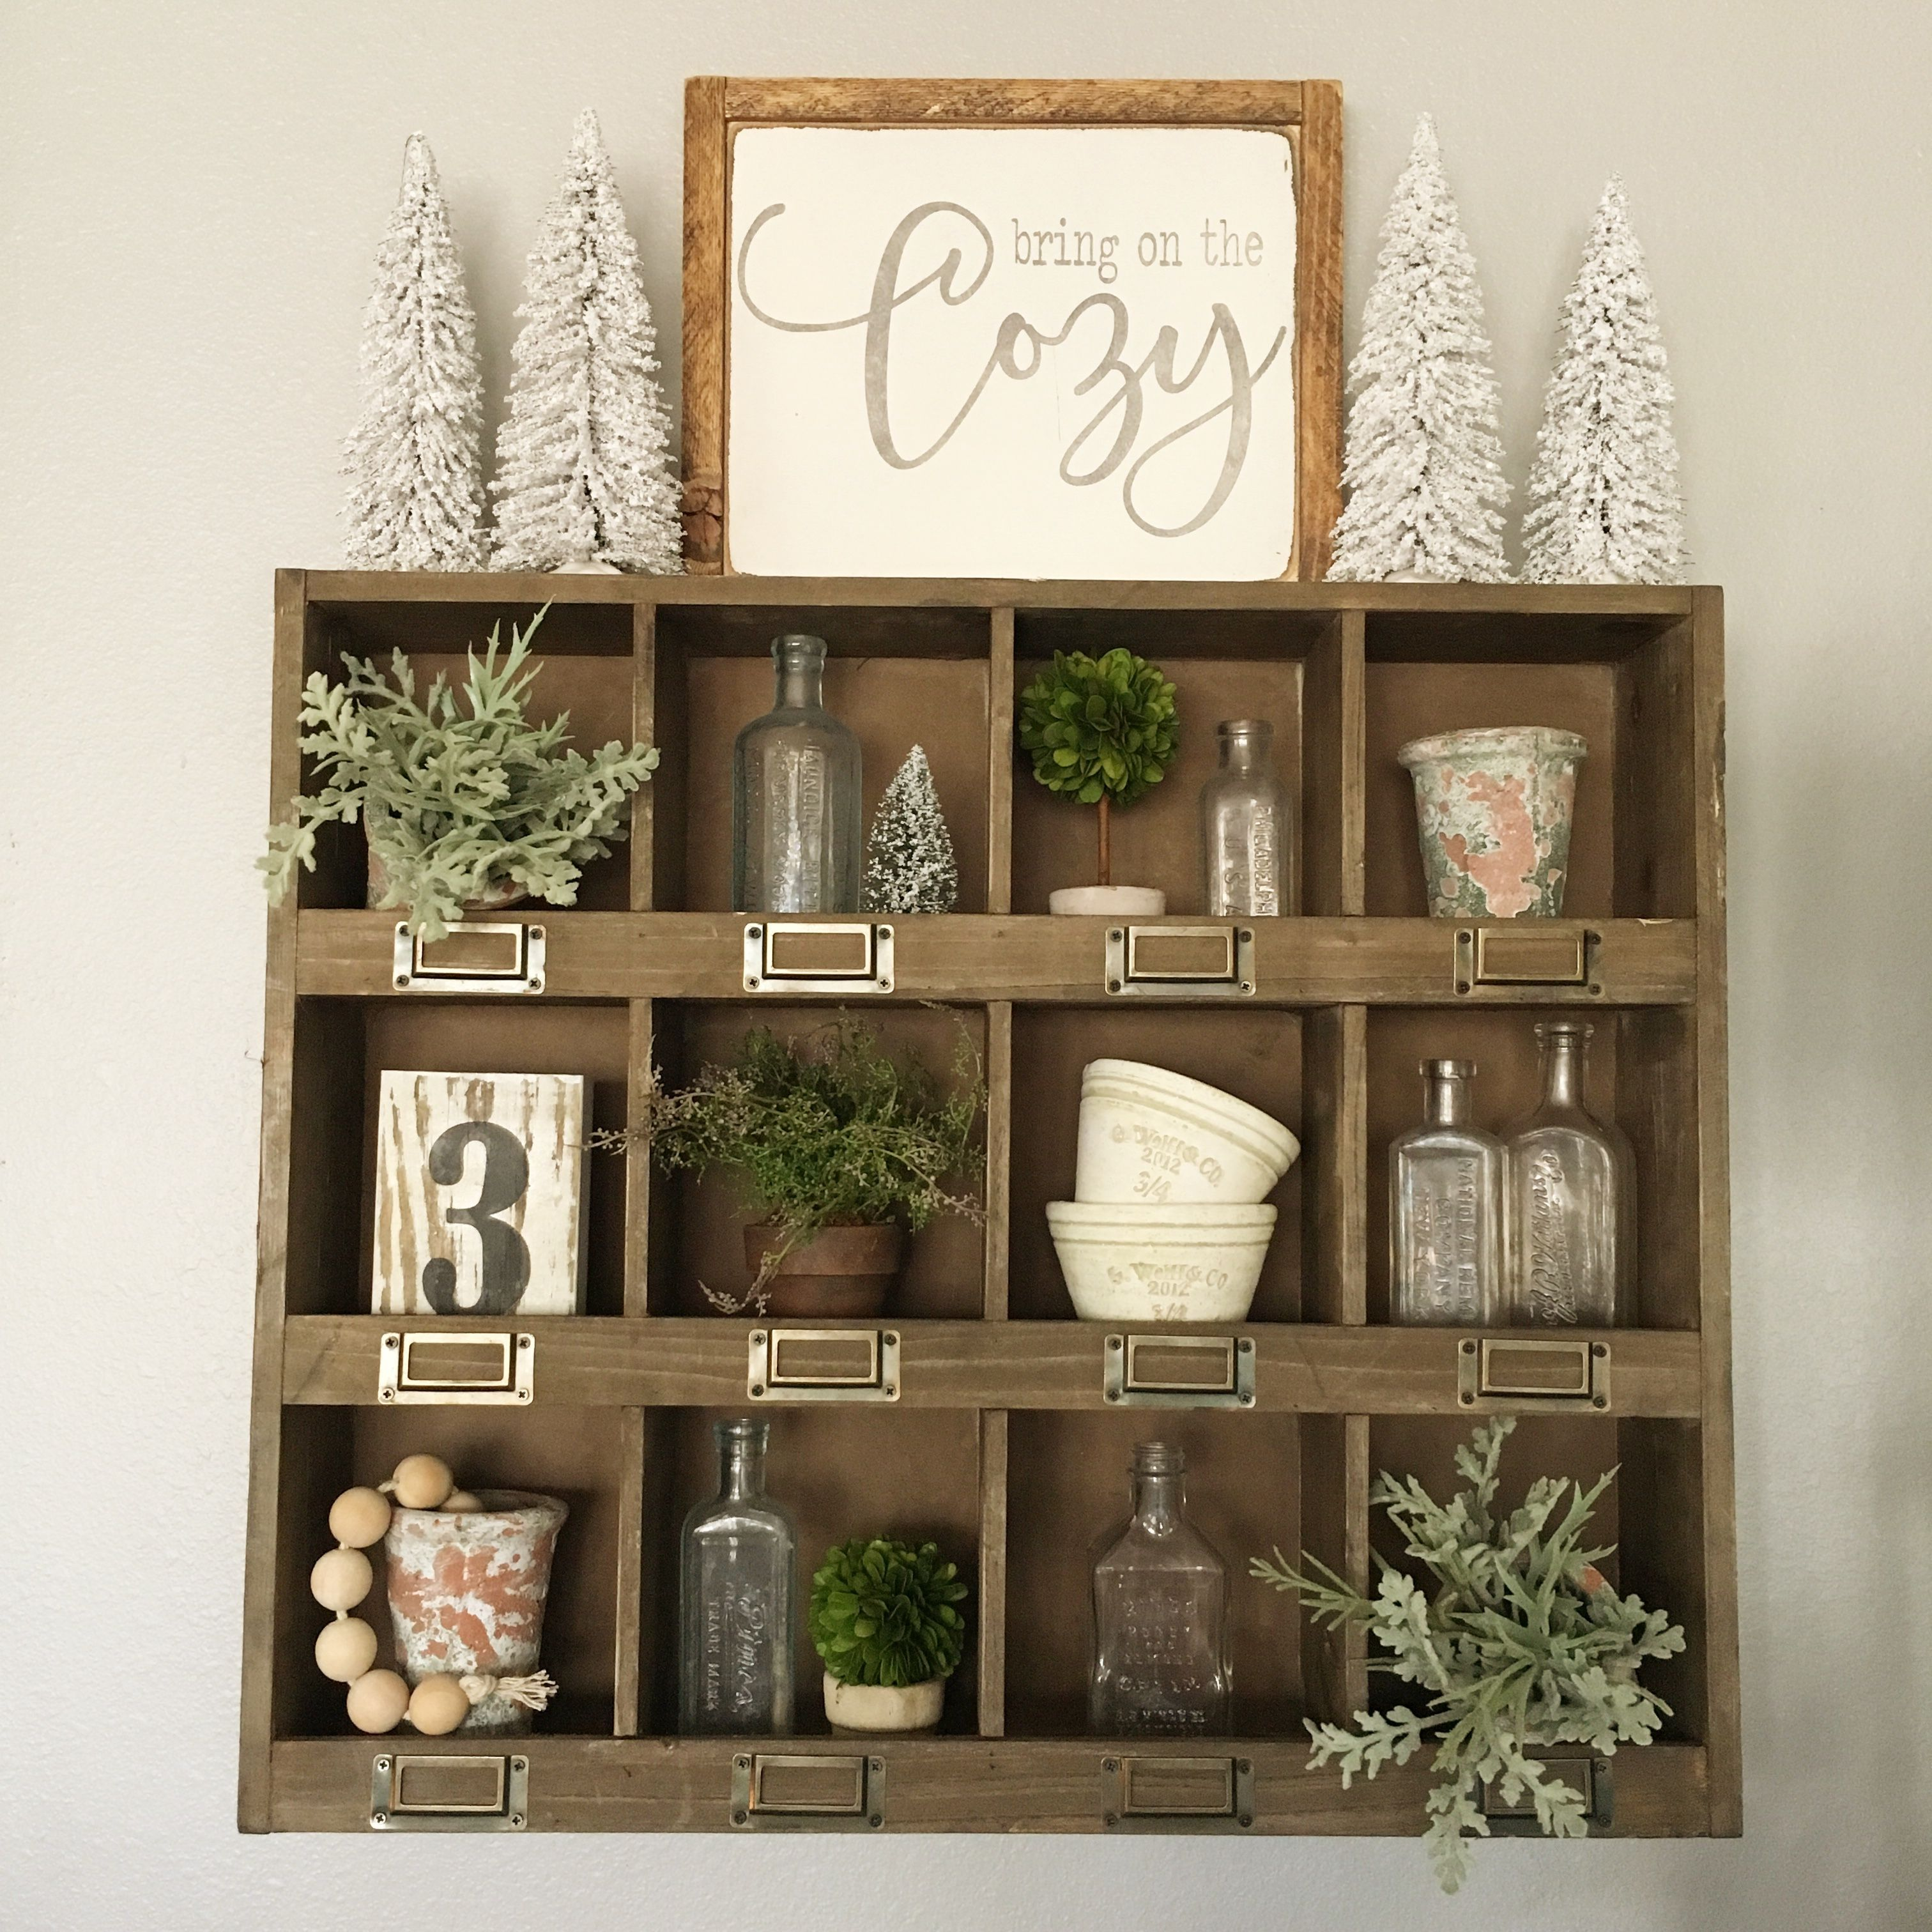 tables living rustic ideas wooden room amazing decorations exterior lobby hobby of crates picture farmhouse console pictures best fresh decor